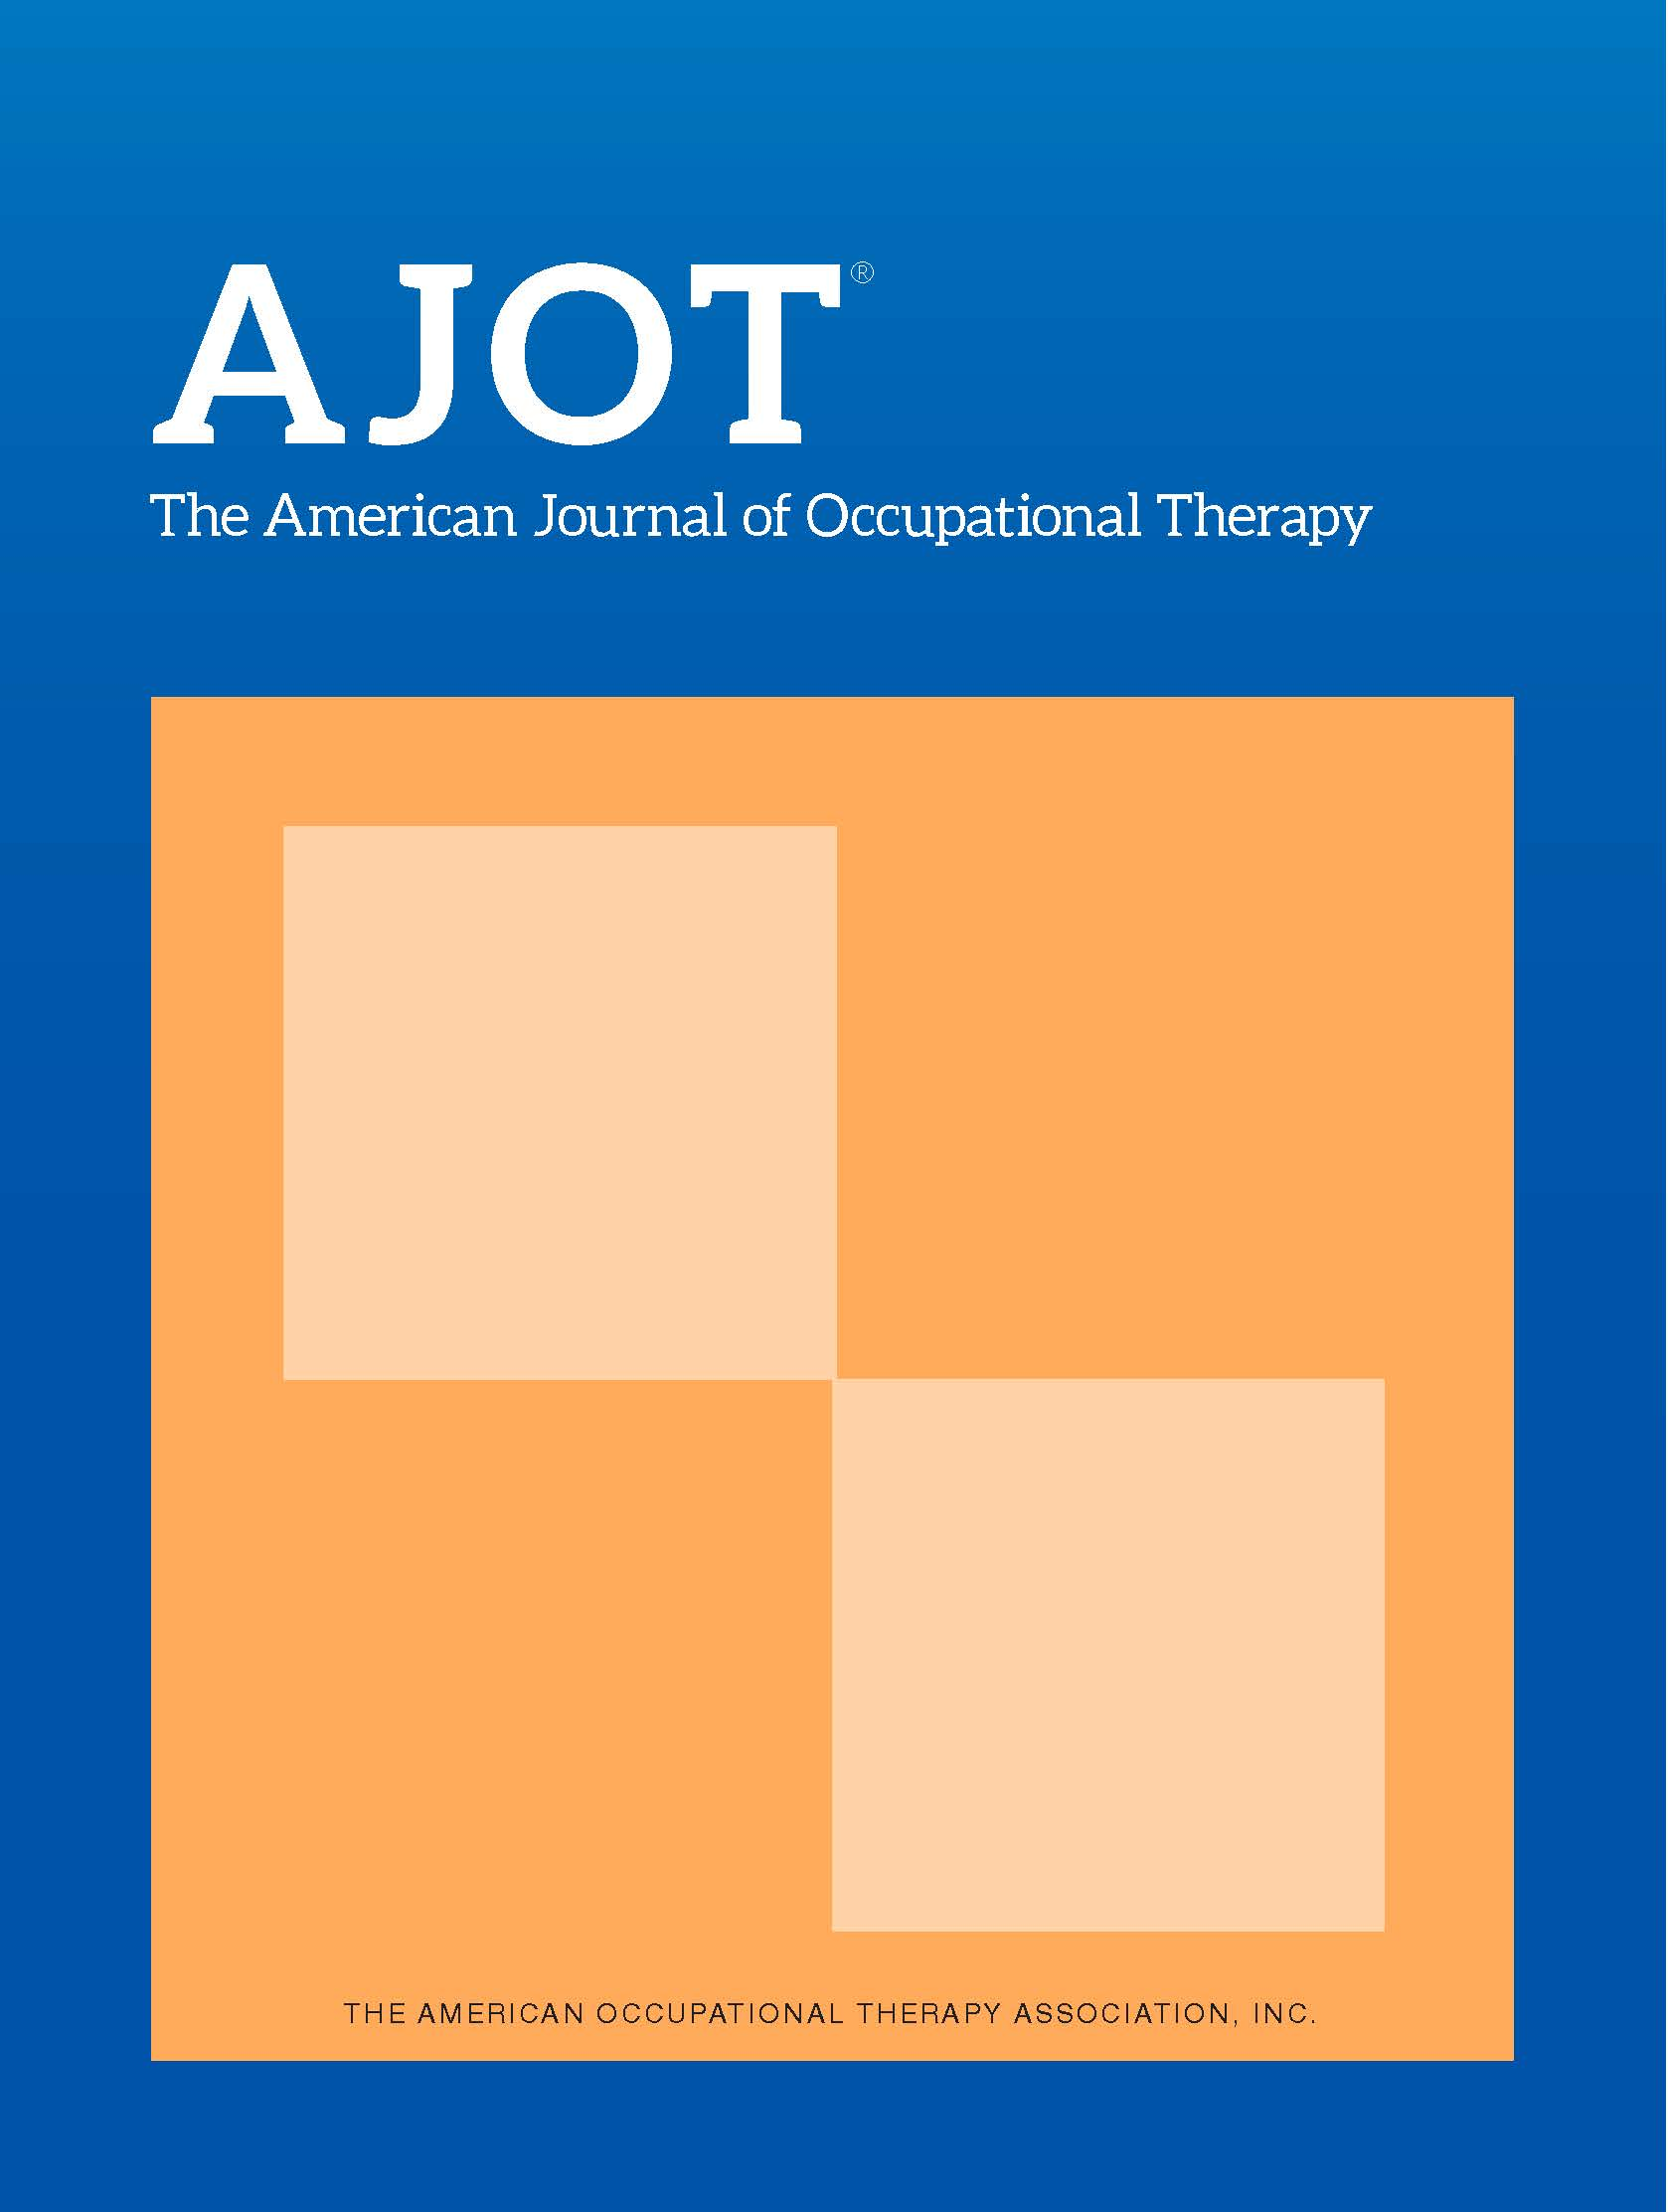 AJOT Cover